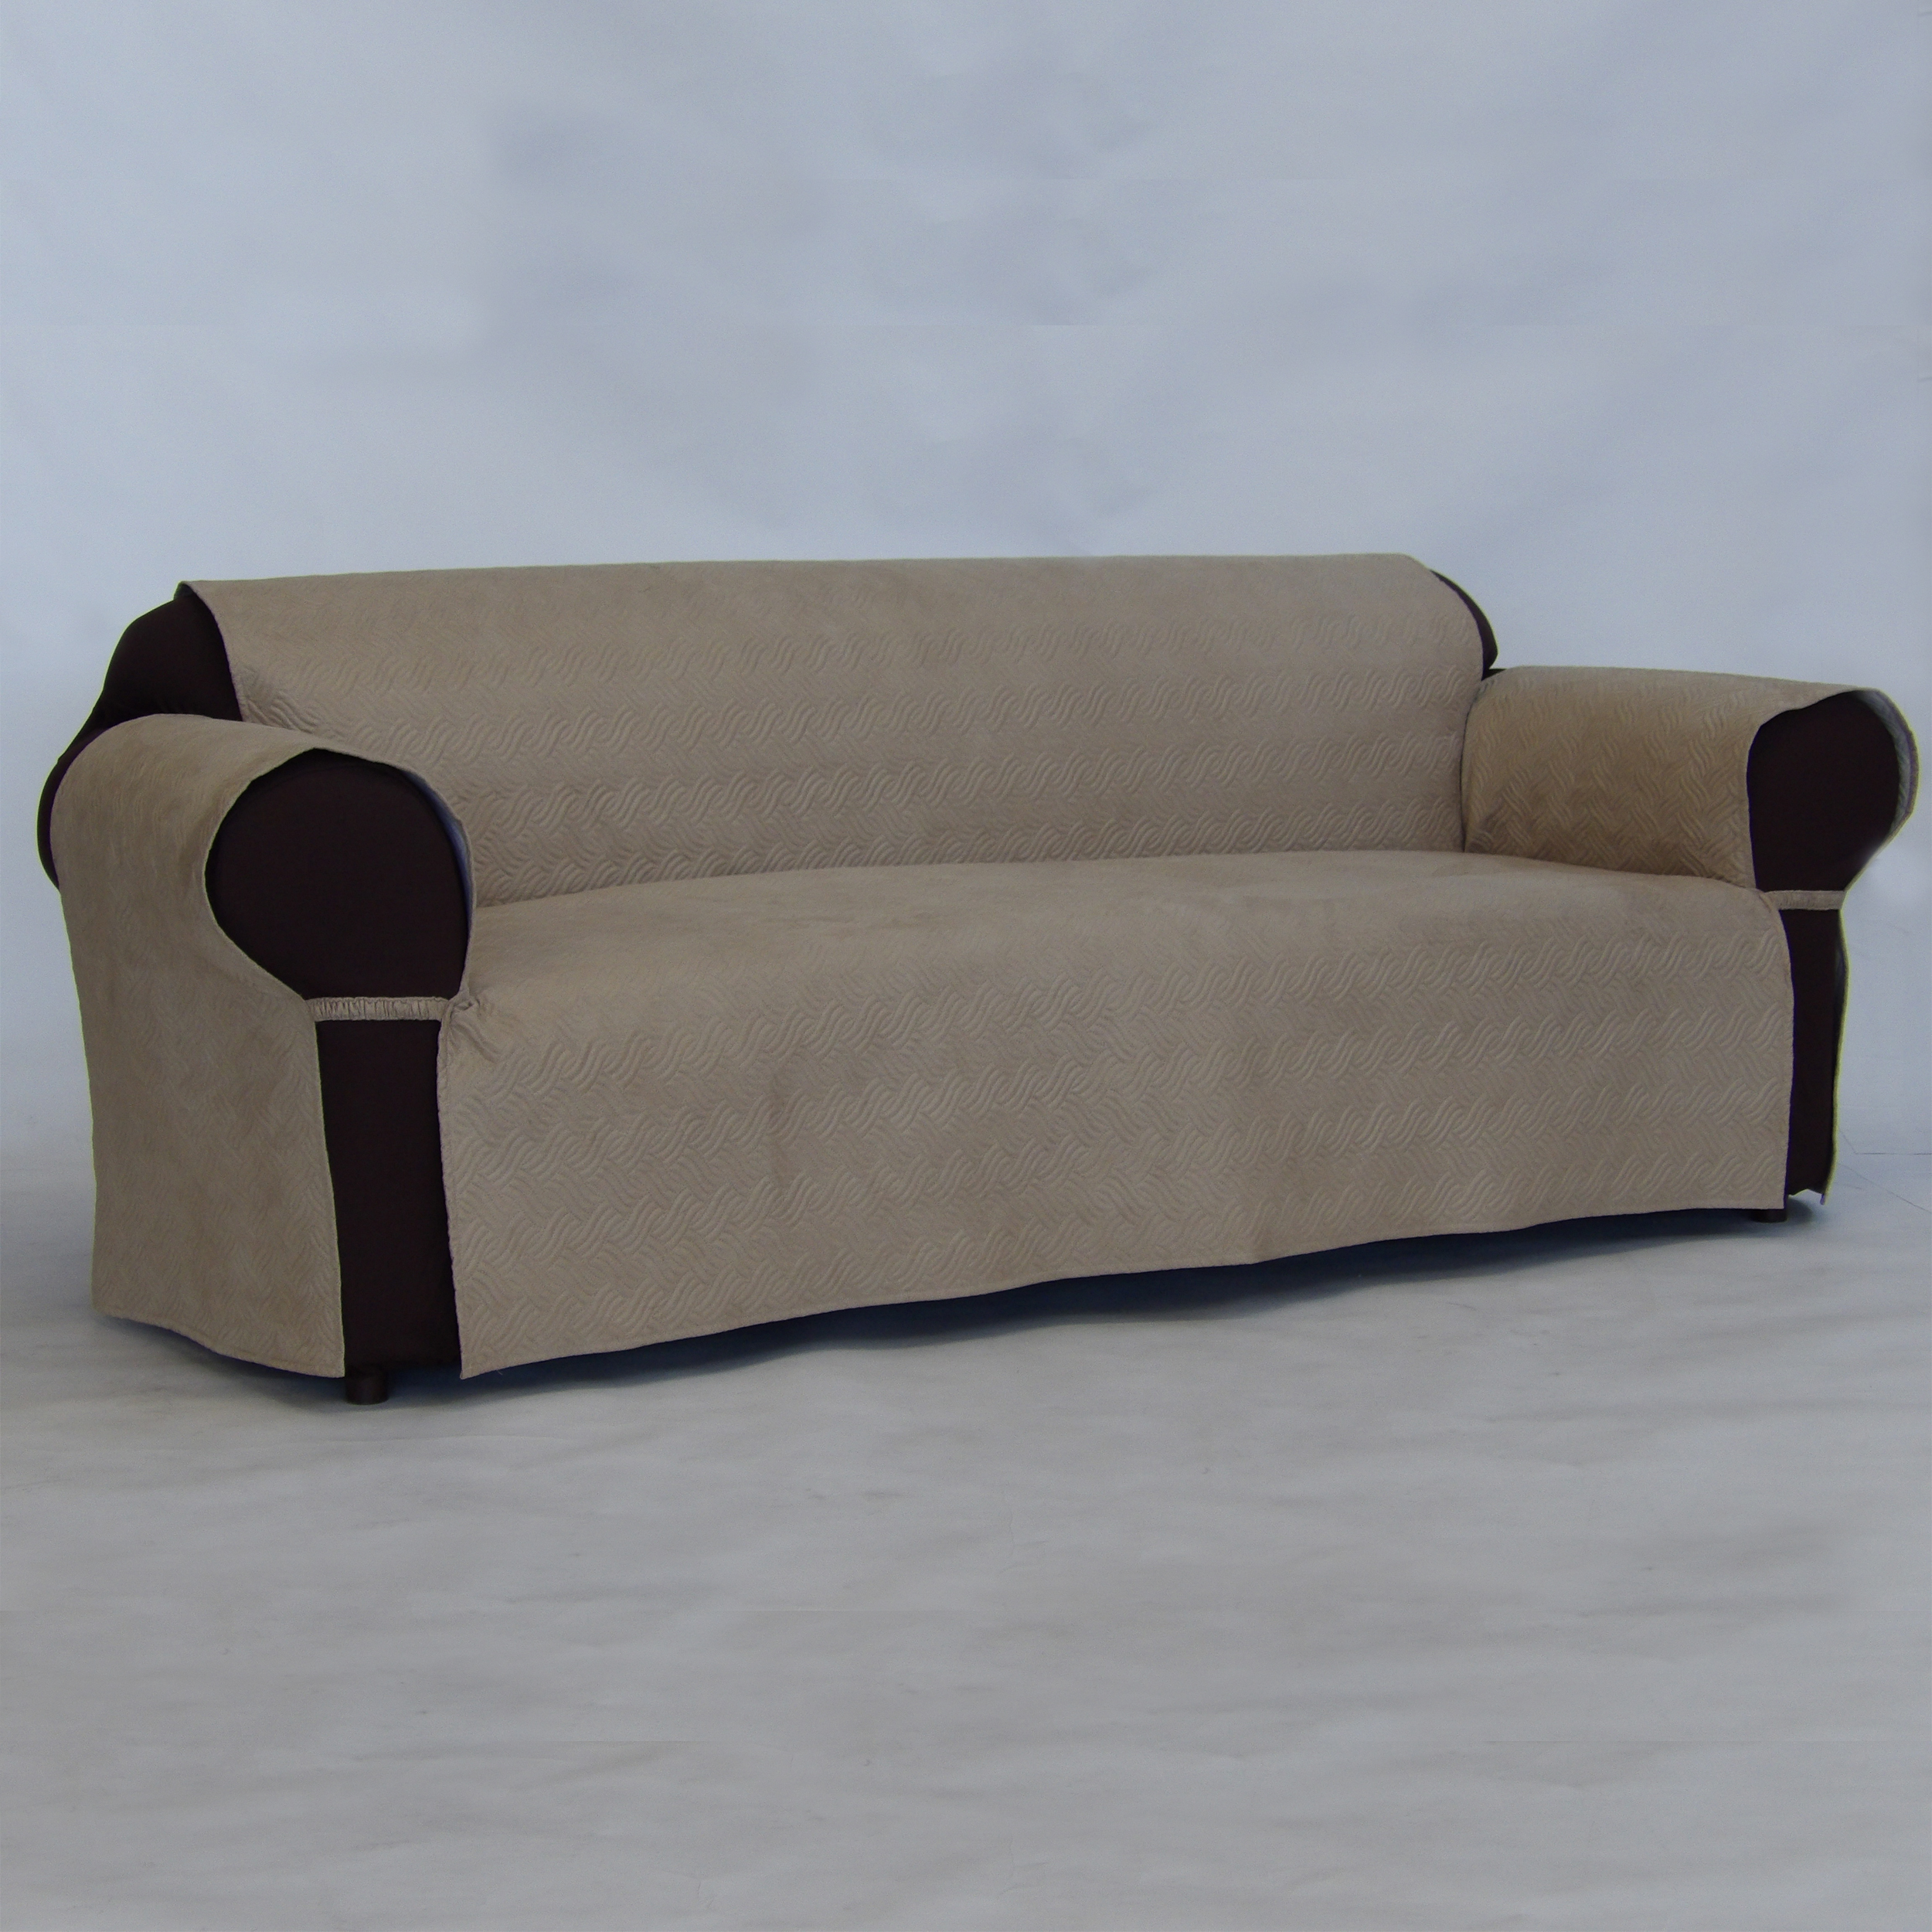 sofa covers at kmart best places to buy sofas quilted pet cover beige tan shop your way online